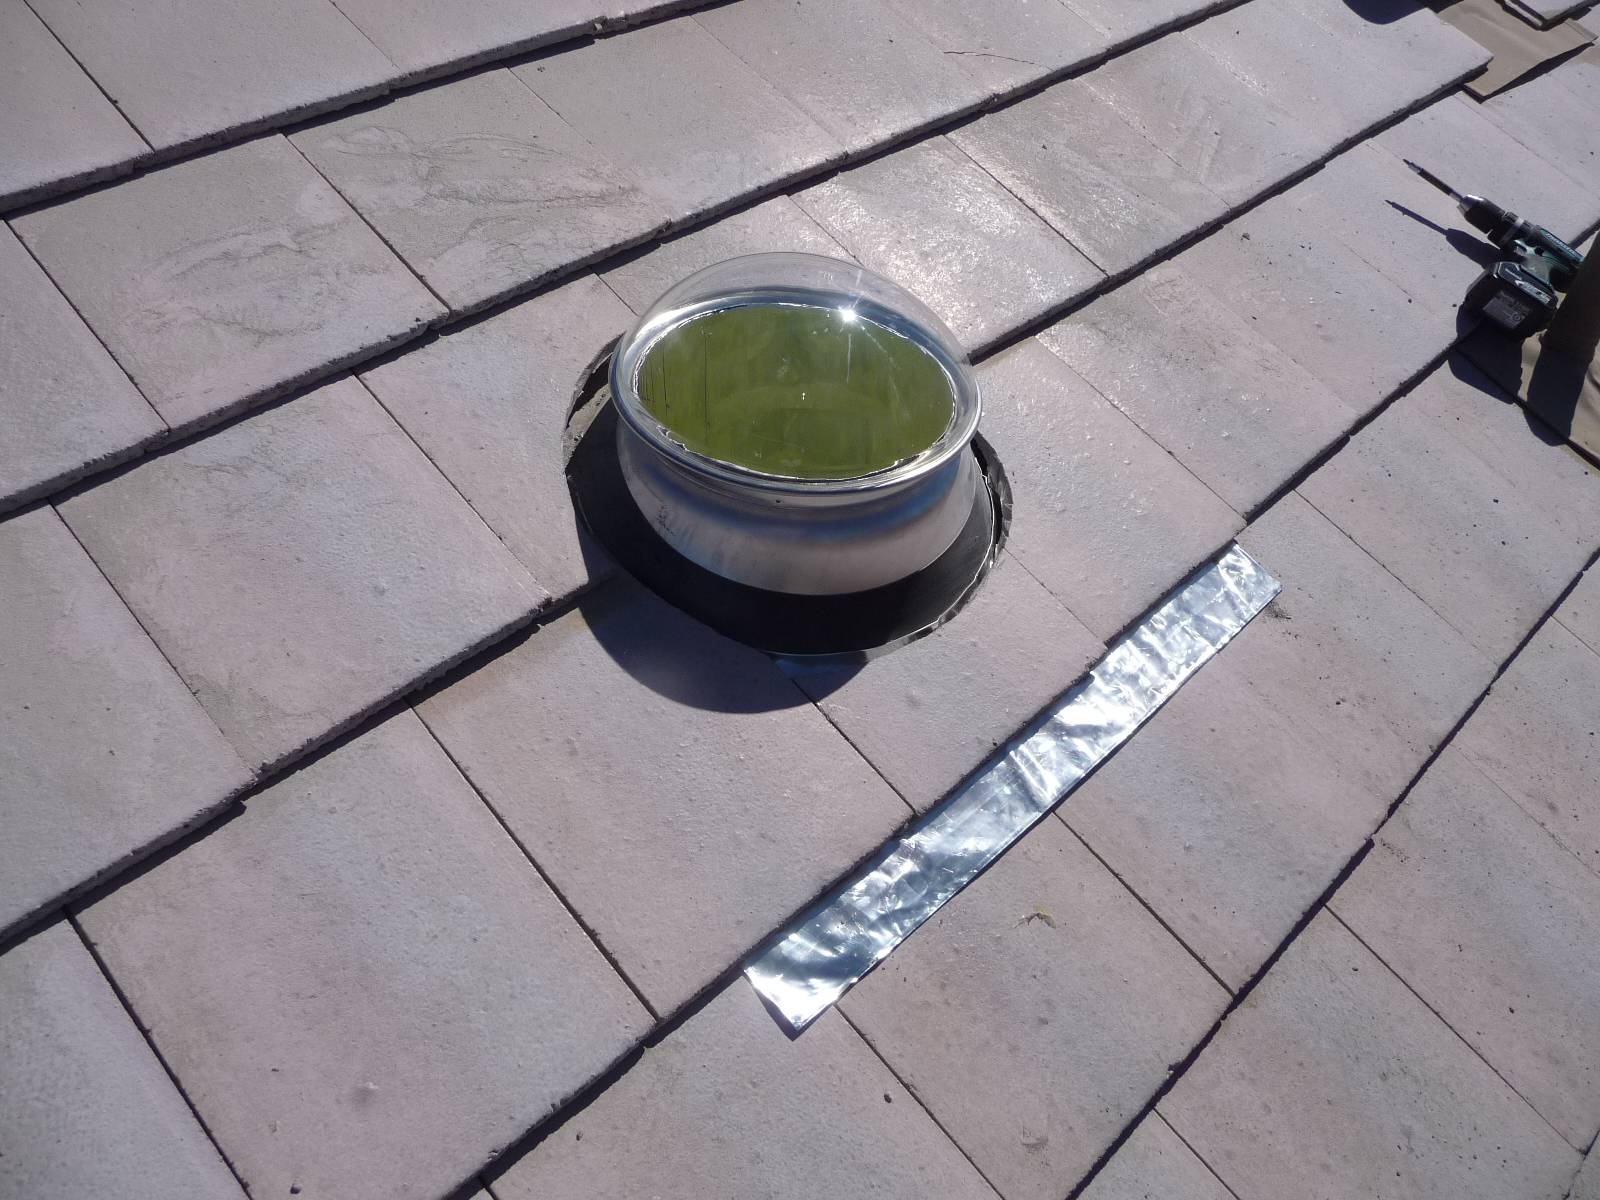 Tubular Skylights All Of The Benefits None Of The Problems